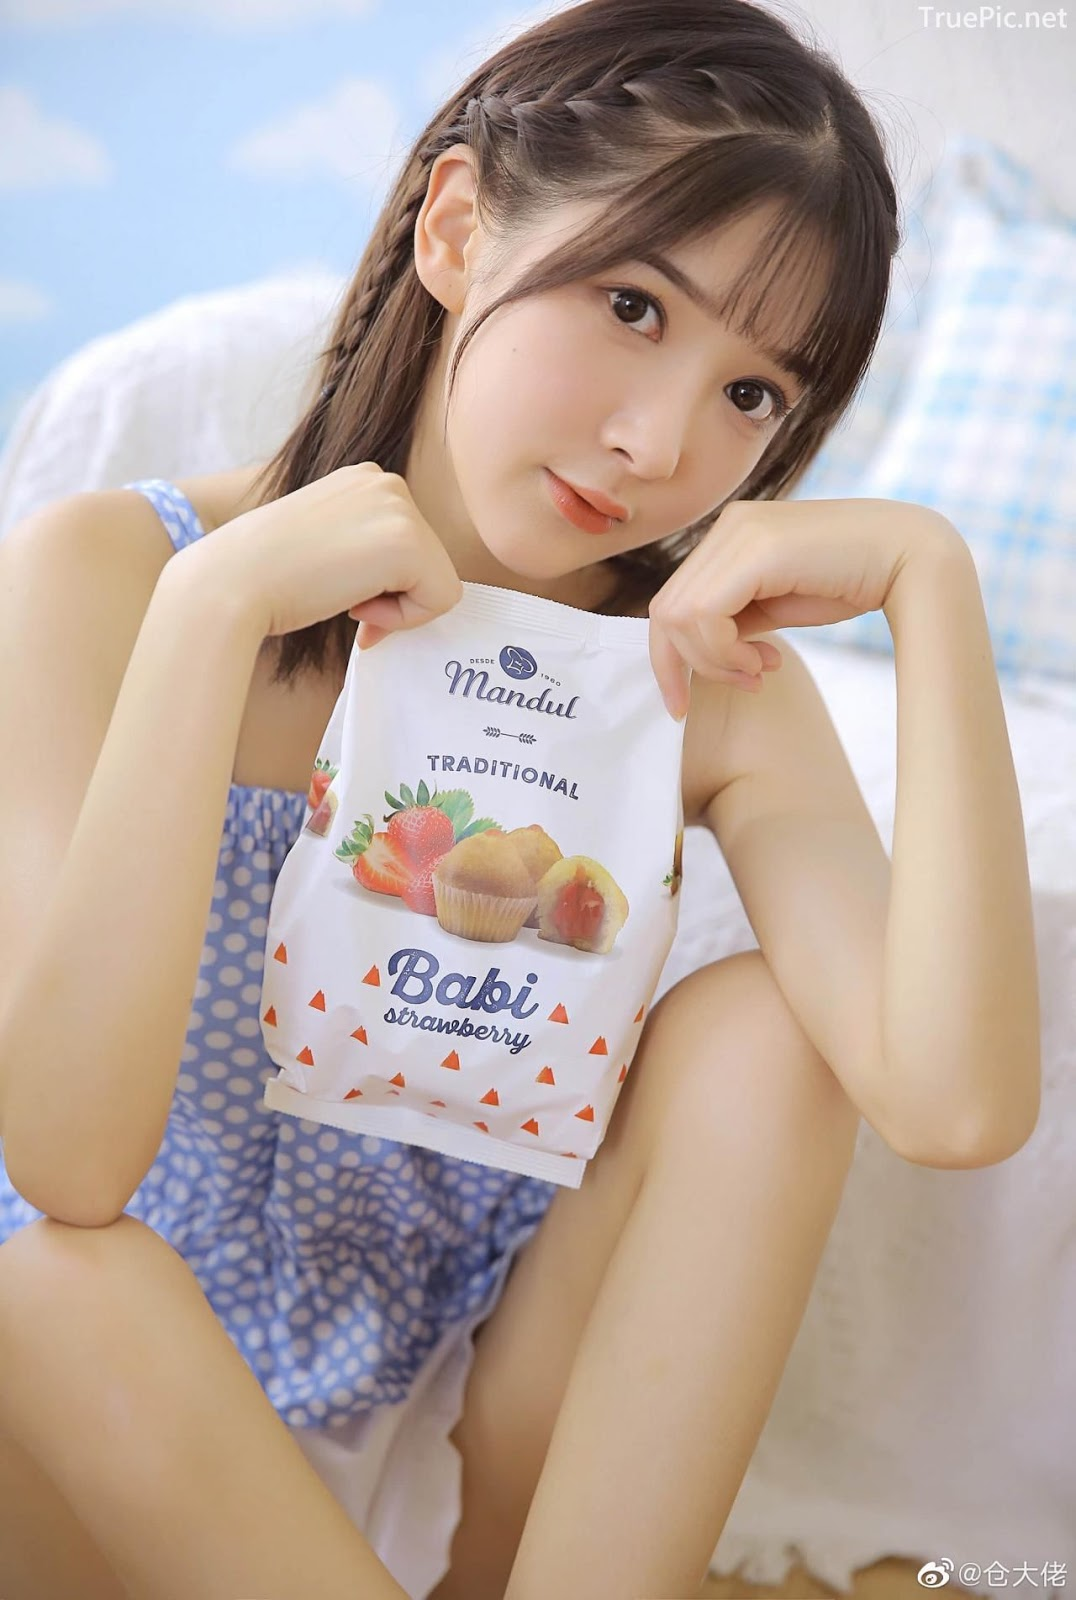 Chinese cute girl - She is a Beautiful sweet candy girl - TruePic.net - Picture 7